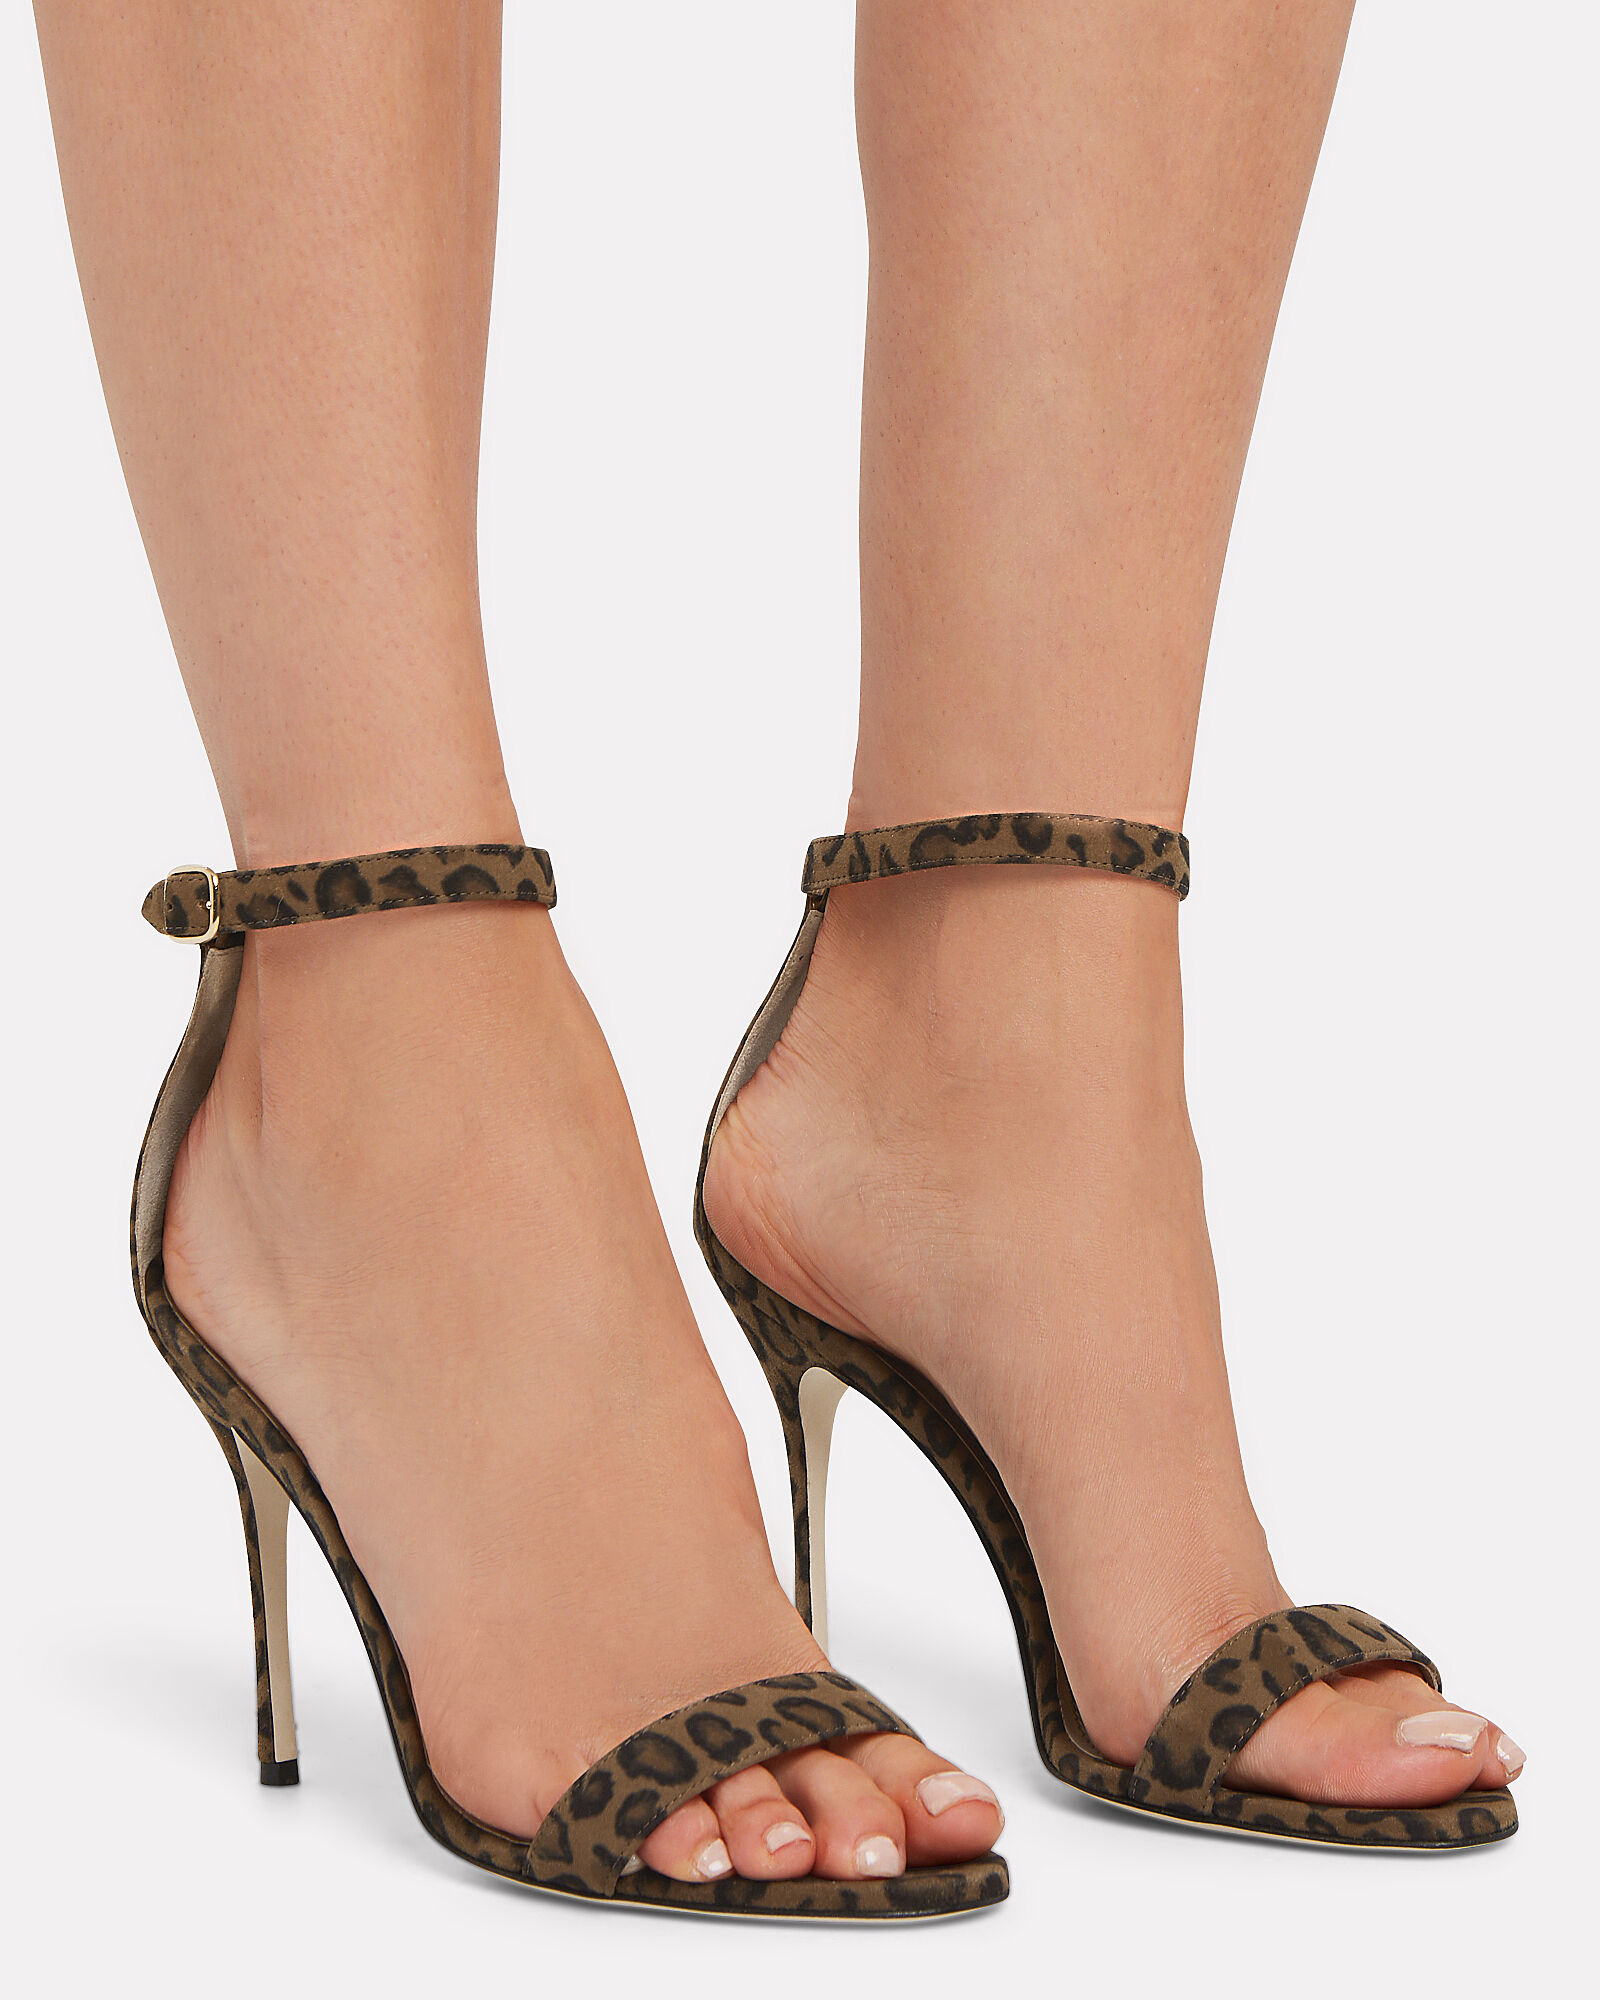 Chaos Leather Heeled Sandals, BROWN, hi-res